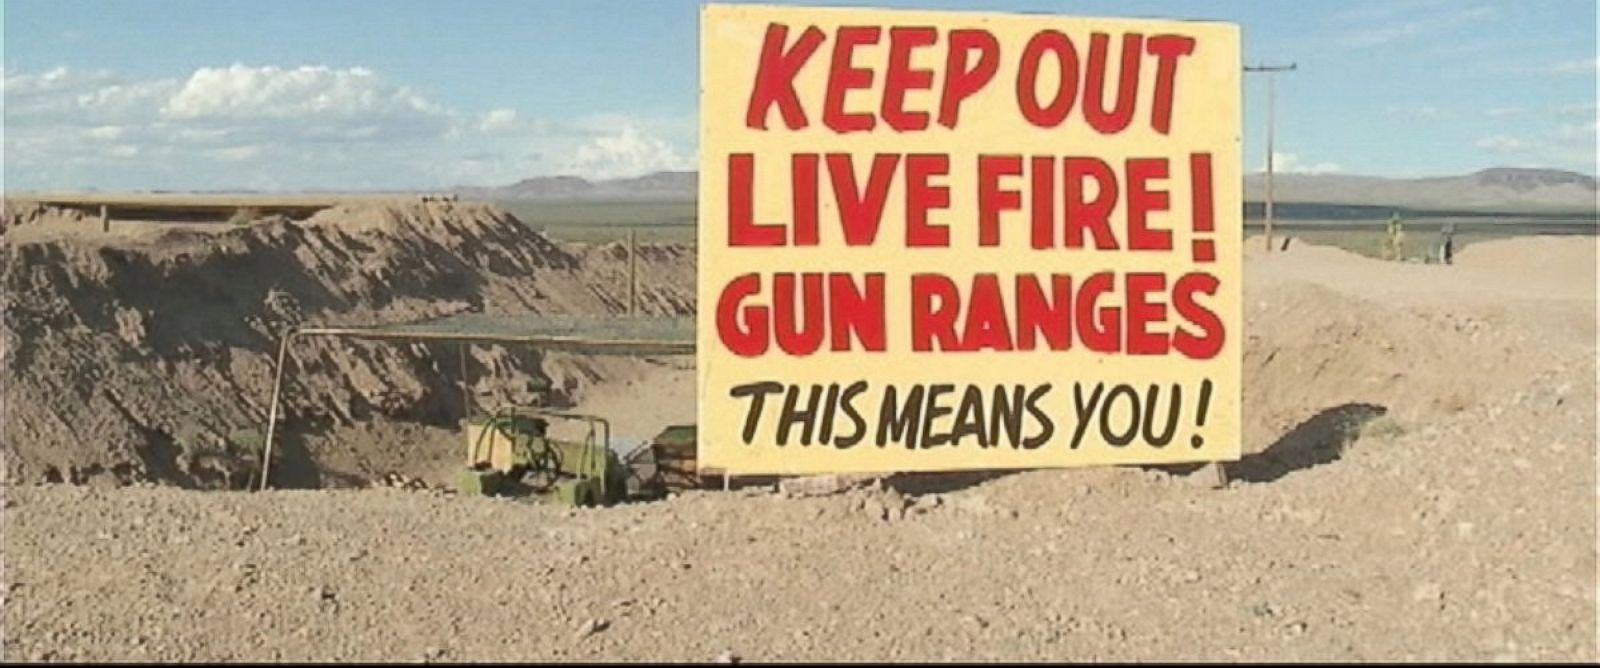 PHOTO: A fatal shooting occurred at a gun range located at Last Stop Arizona, Aug. 25, 2014.